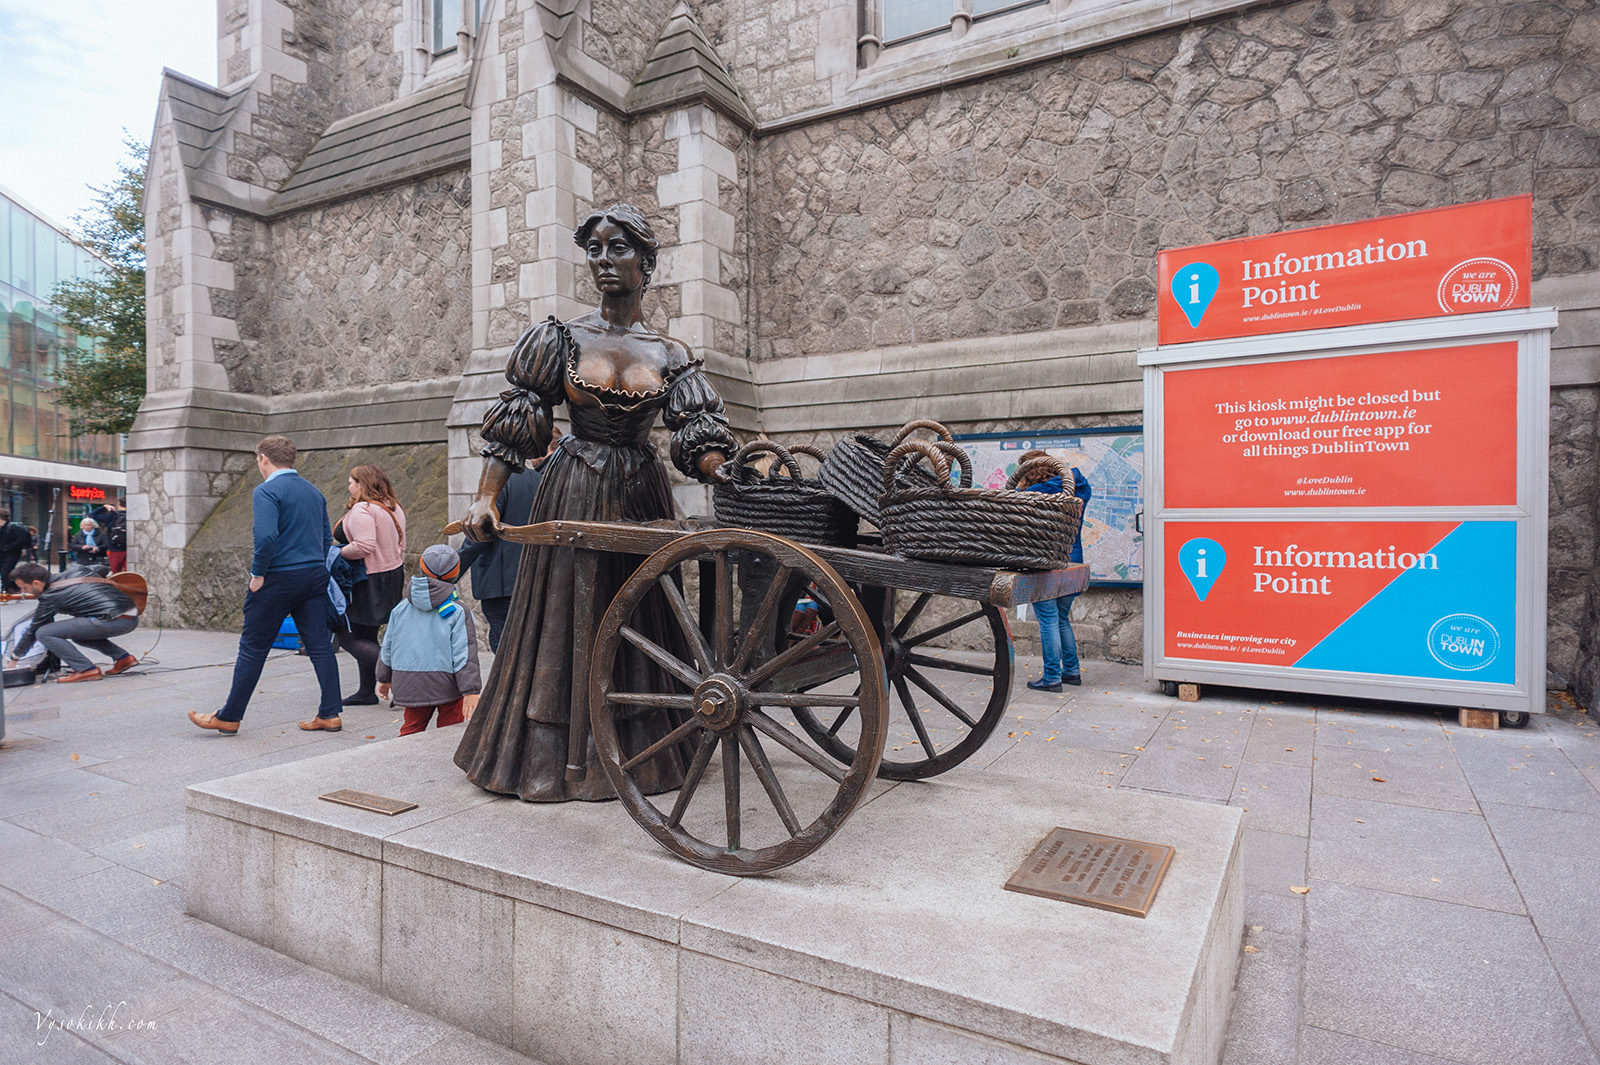 "Molly Malone  In Dublin's fair city Where the girls are so pretty I first set my eyes on sweet Molly Malone As she wheeled her wheelbarrow Through the streets broad and narrow Crying ""cockles and mussels, alive, alive, oh"" Alive, alive, oh Alive, alive, oh Crying ""cockles and mussels, alive, alive, oh"" She was a fishmonger And sure, t'was no wonder For so were her mother and father before And they wheeled their barrow Through the streets broad and narrow Crying ""cockles and mussels, alive, alive, oh"" Alive, alive, oh Alive, alive, oh Crying ""cockles and mussels, alive, alive, oh"" She died of a fever And sure, so one could save her And that was the end of sweet Molly Malone Now her ghost wheels her barrow Through the streets broad and narrow Crying ""cockles and mussels, alive, alive, oh"" Alive, alive, oh Alive, alive, oh Crying ""cockles and mussels, alive, alive, oh"" Alive, alive, oh Alive, alive, oh Crying ""cockles and mussels, alive, alive, oh"""